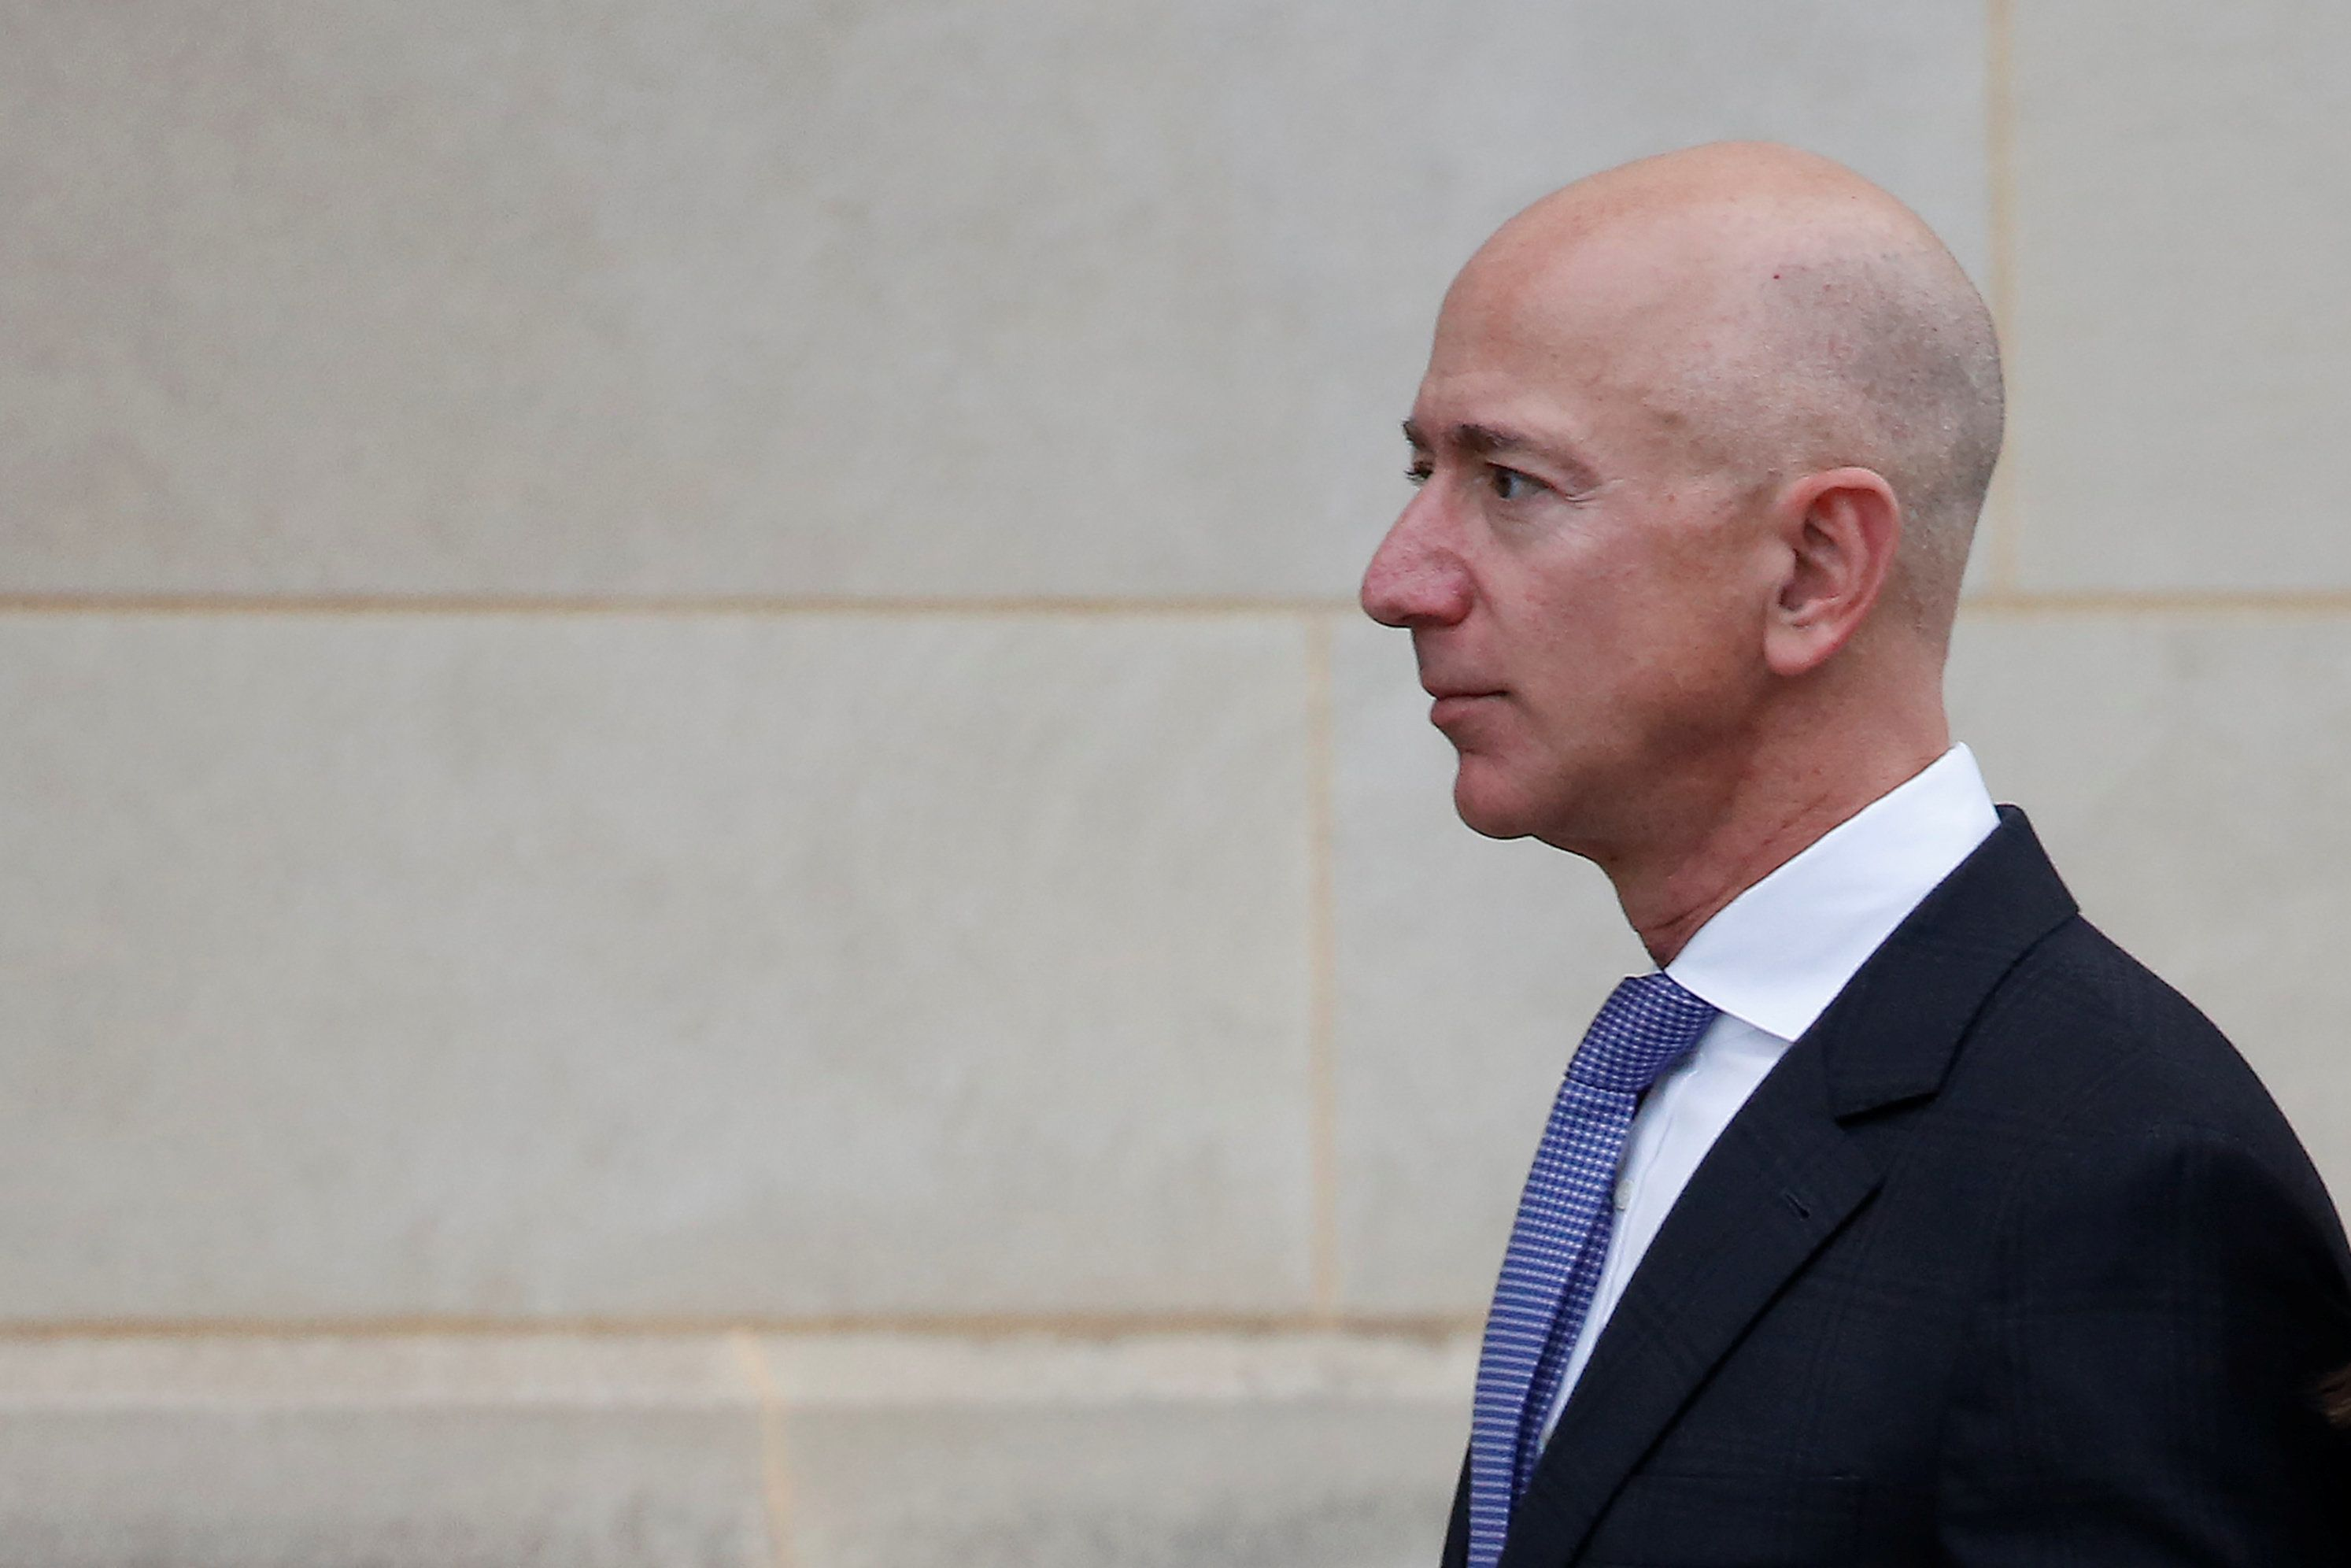 Biden economist: Bernie Sanders Amazon, Stop BEZOS bill may backfire